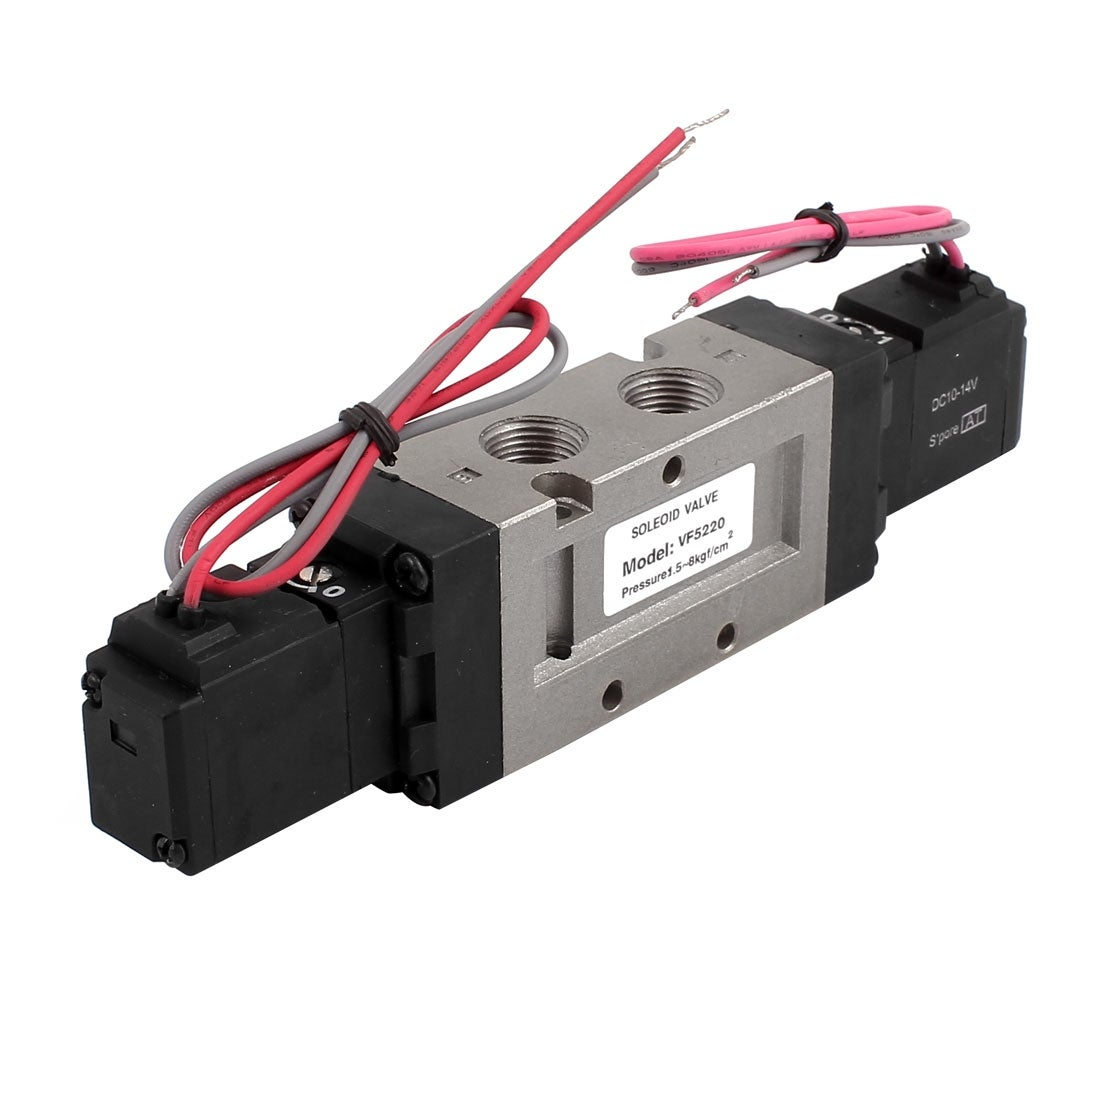 shop dc 12v 2 position 5 way 4 wires pneumatic solenoid valve vf5220-6gb -  free shipping on orders over $45 - overstock - 23103539